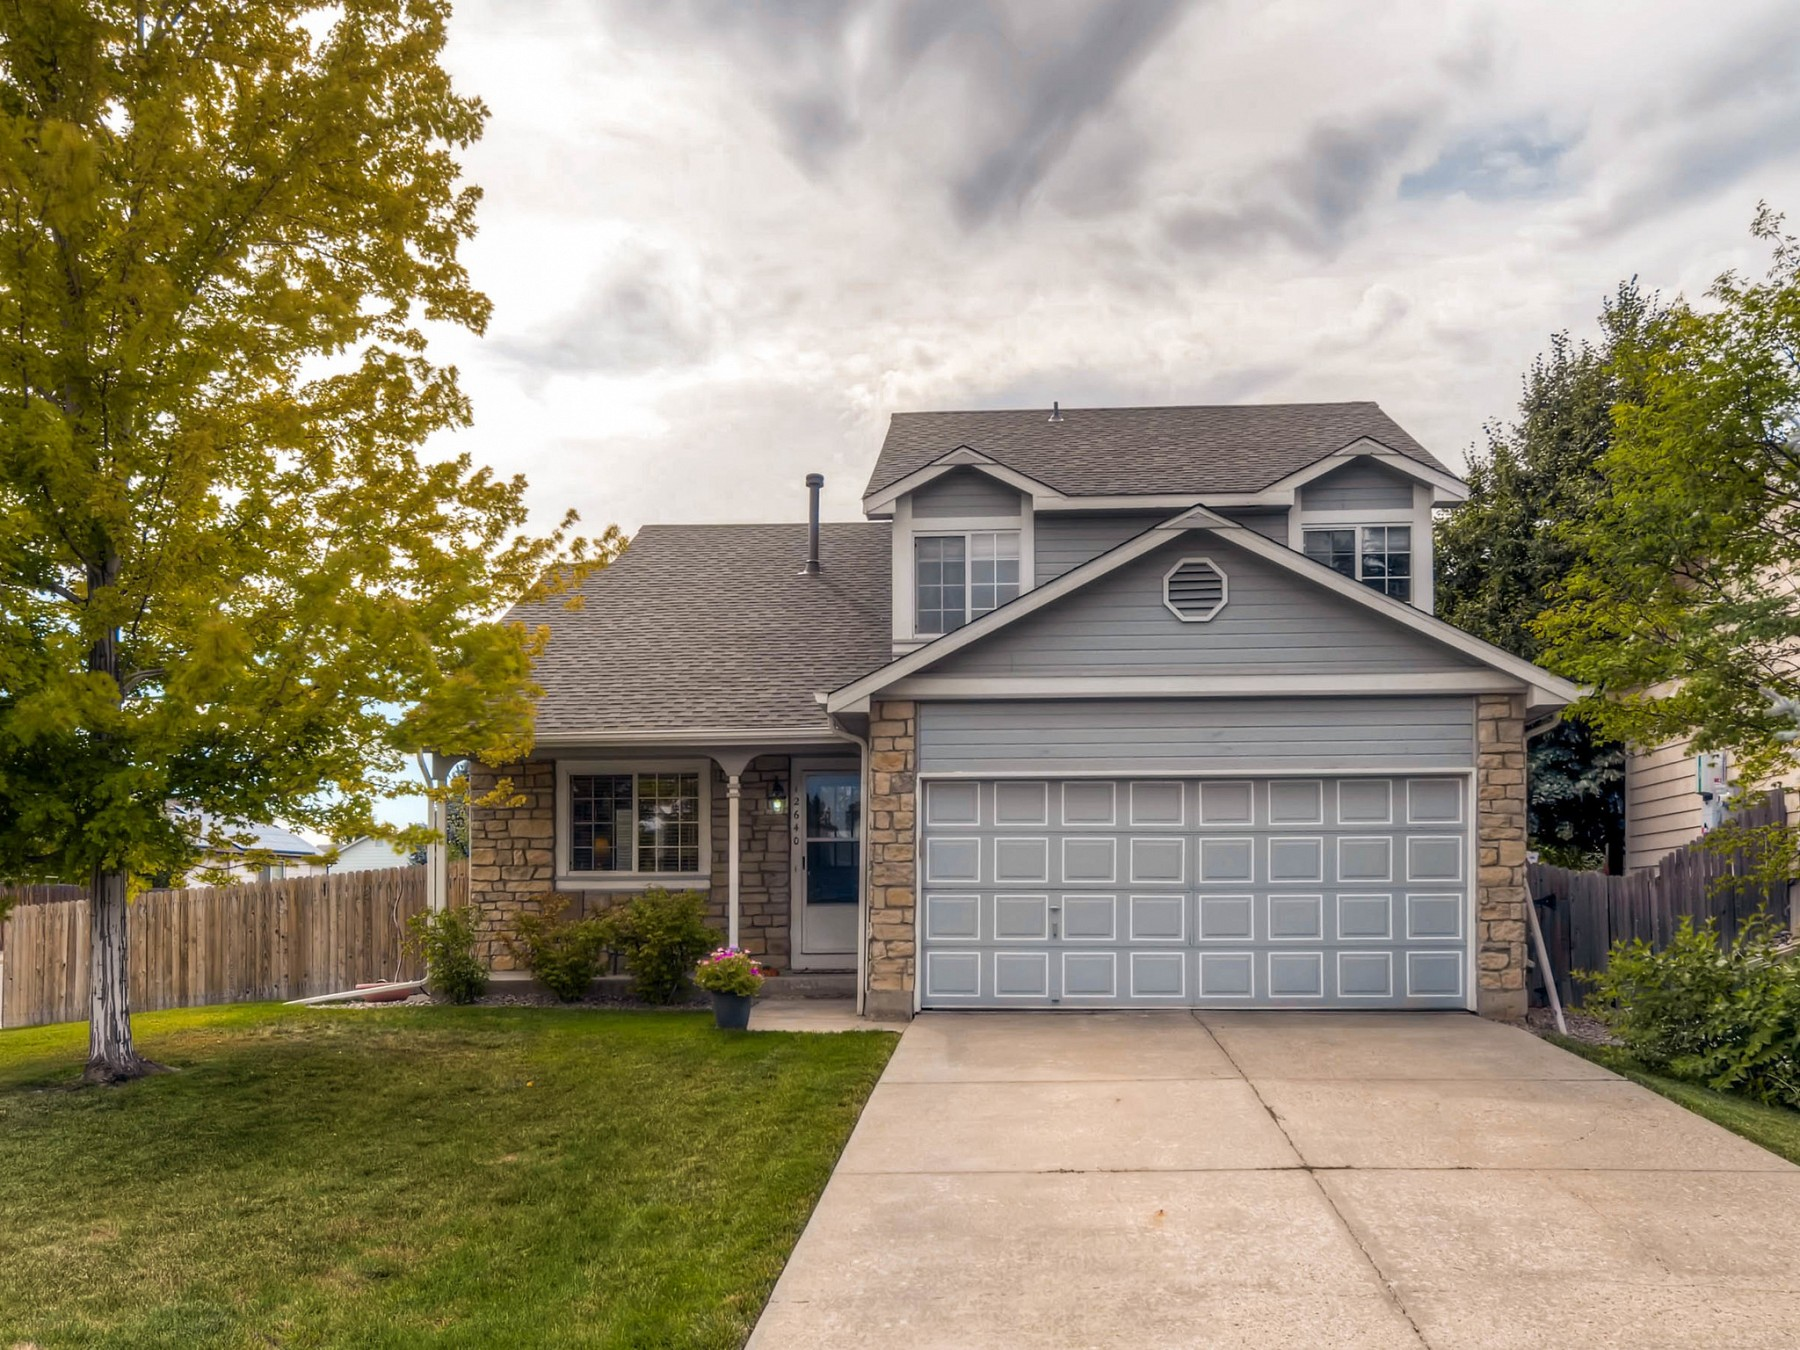 12640 West Crestline Drive, Littleton, CO 80127